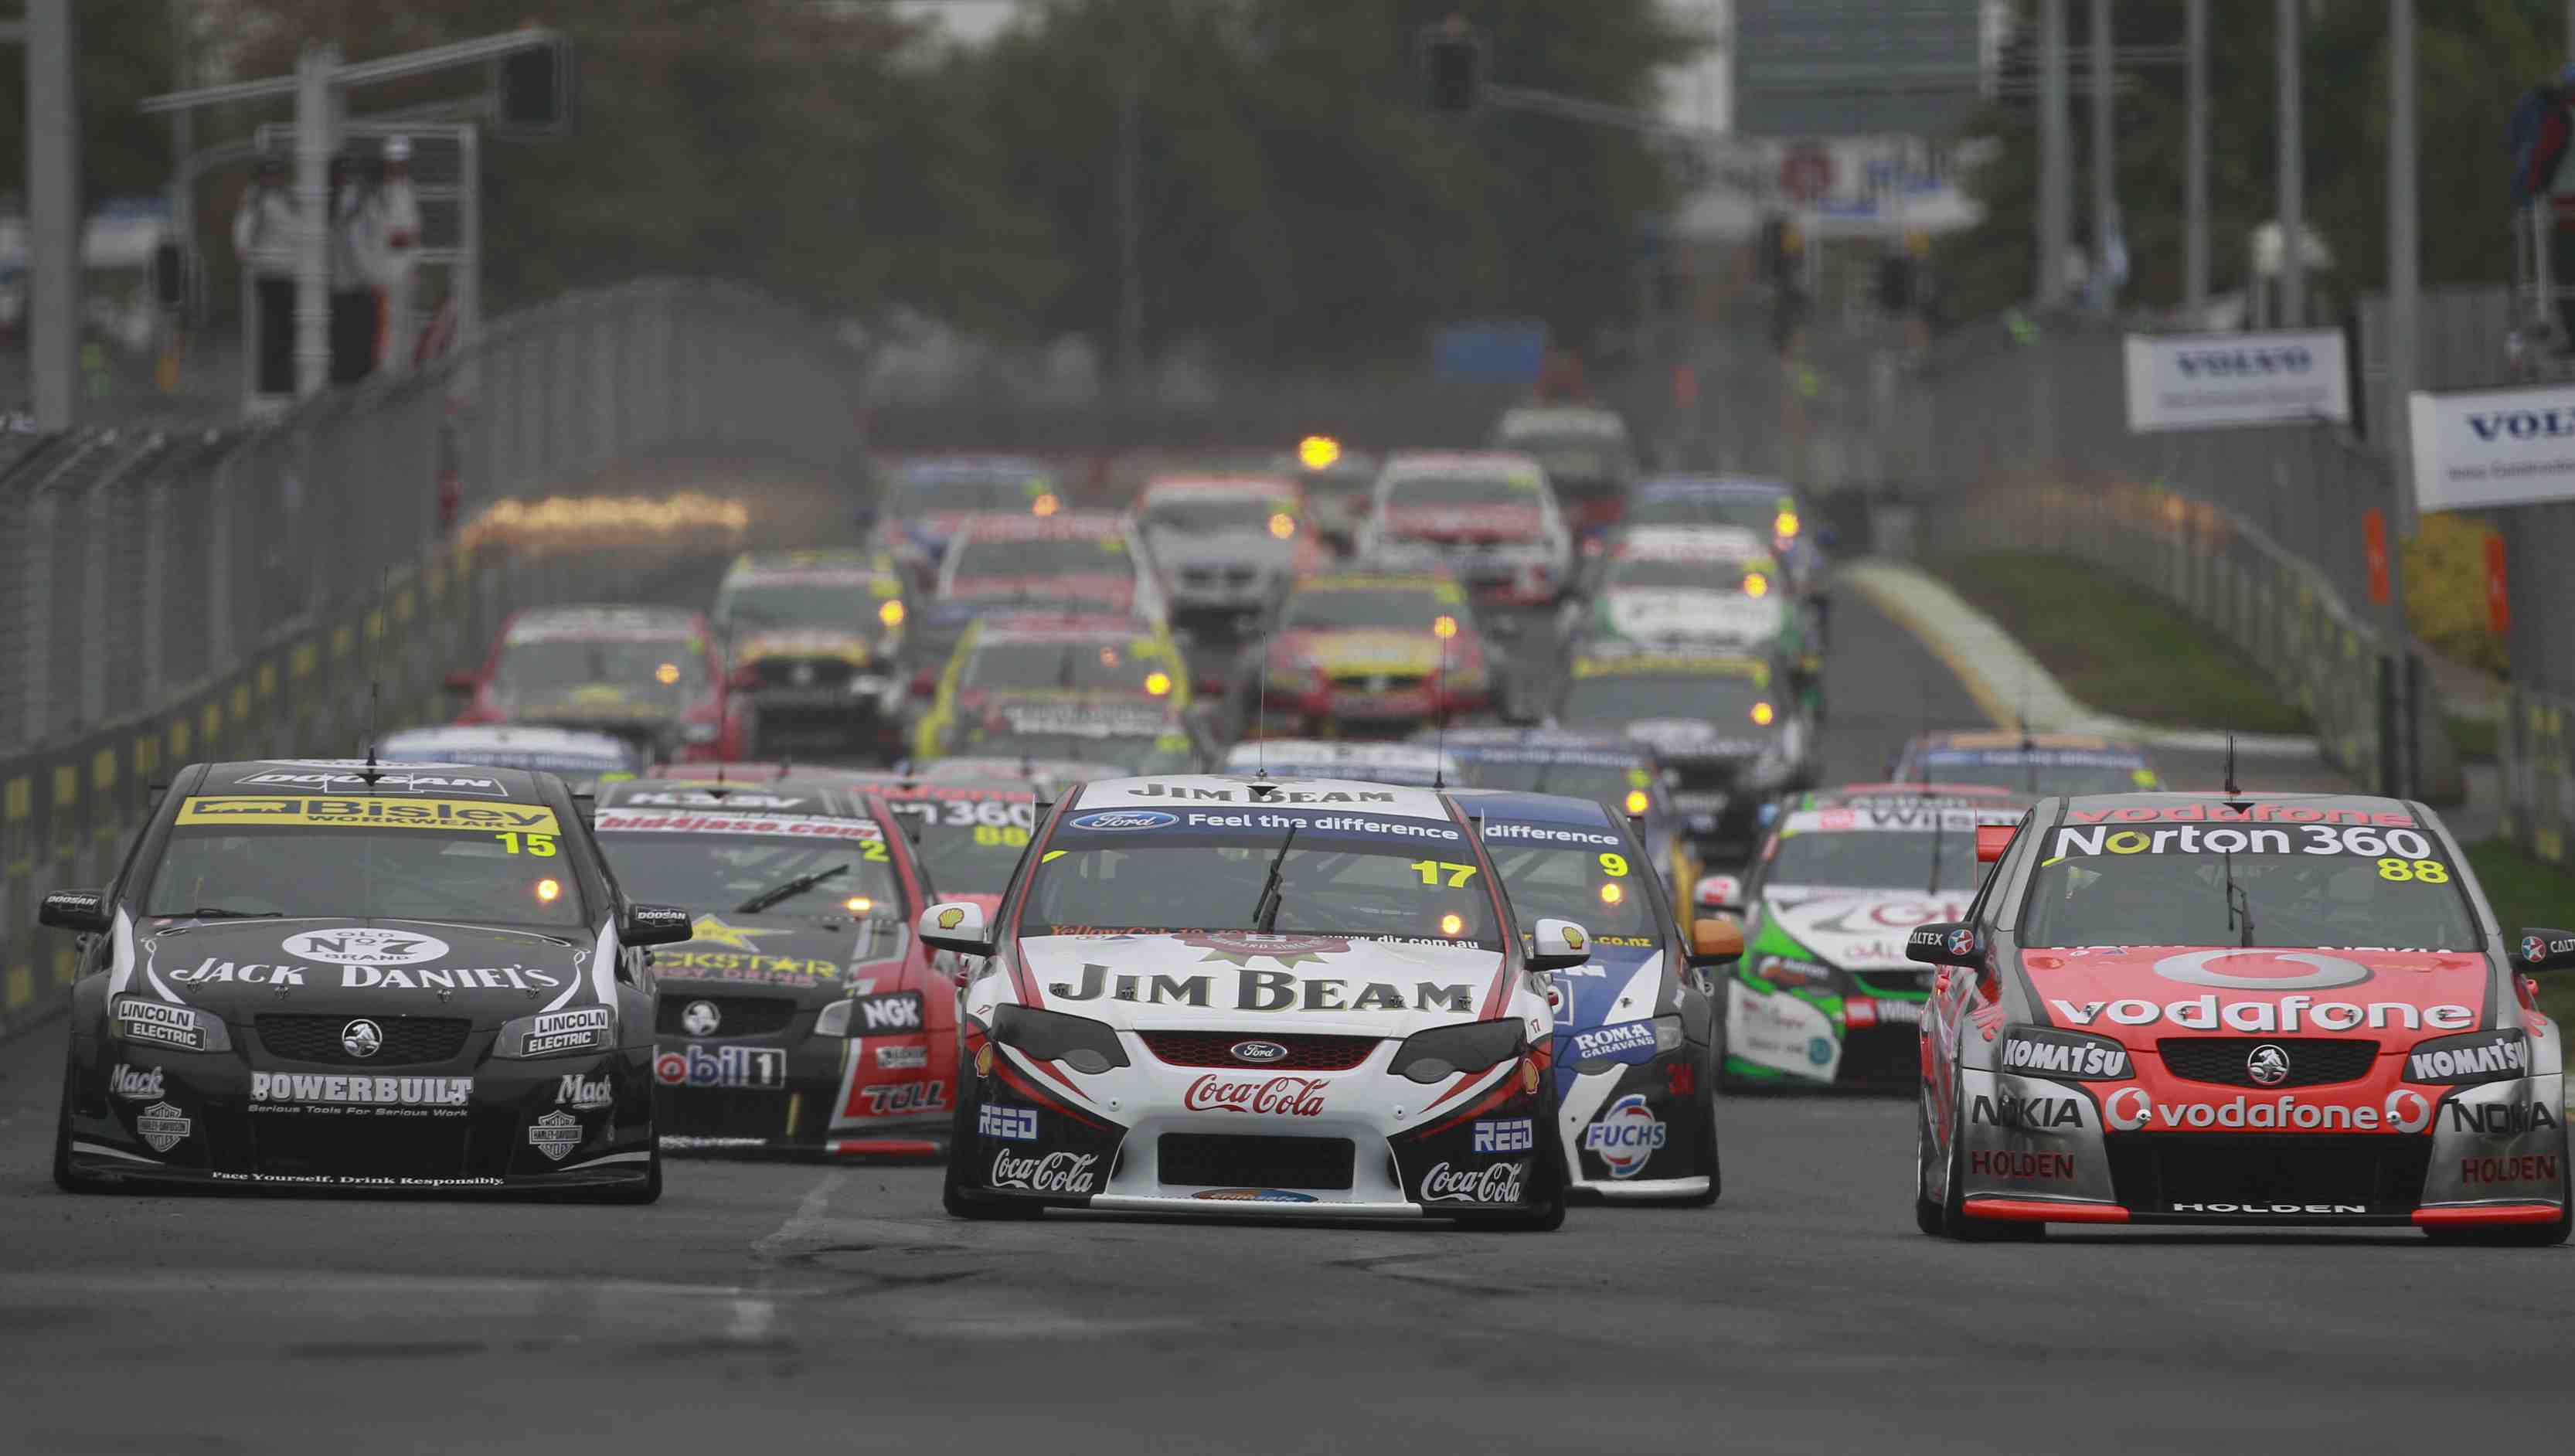 Minister: Overseas expansion a boost for V8s